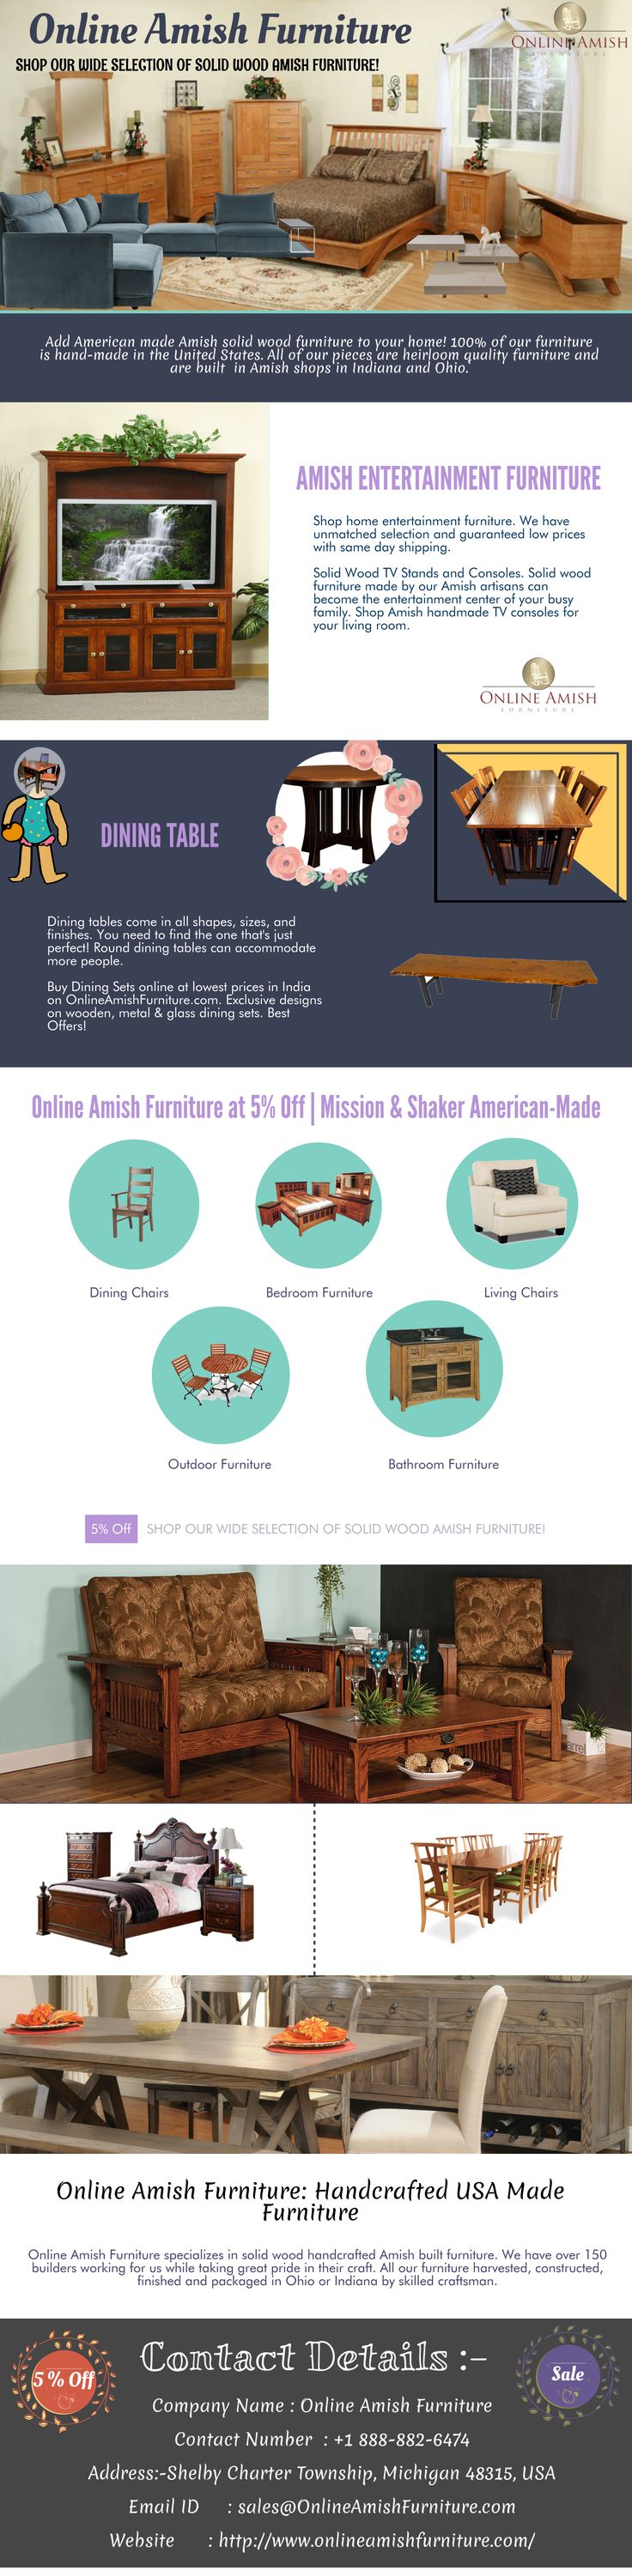 dining tables online usa. online amish furniture: handcrafted usa made furniture dining tables usa